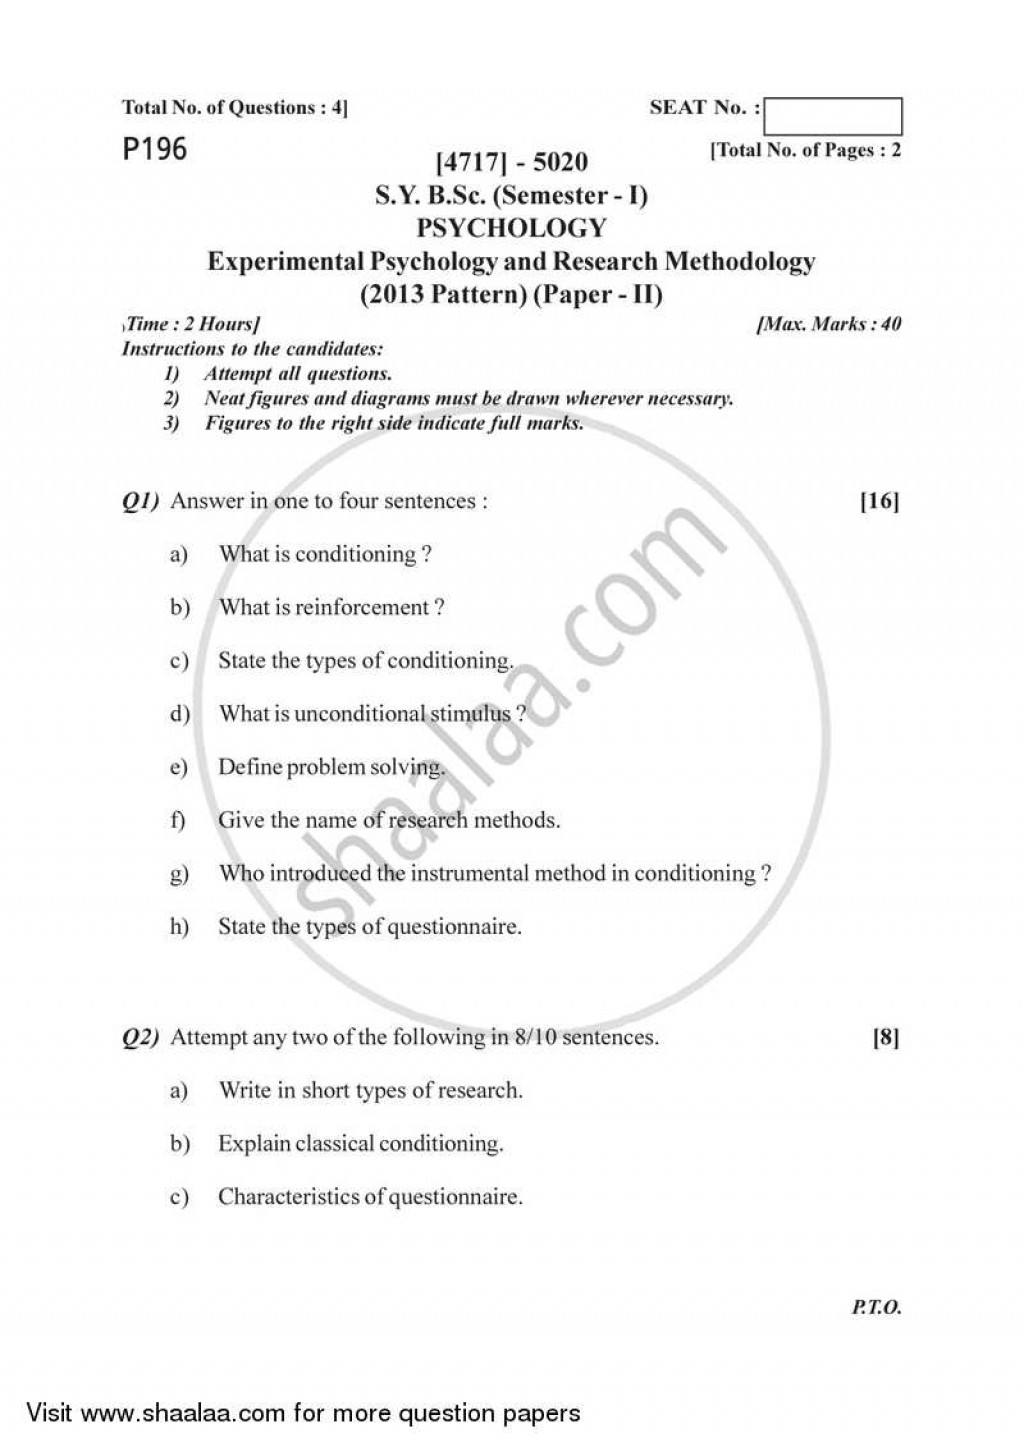 019 Research Paper On Psychology University Of Pune Bachelor Bsc Experimental Methodology Semester Sybsc Pattern 2e41c64dd7a97493da58d01b3ff66032b Wonderful Free Forensic Pdf Topics Large